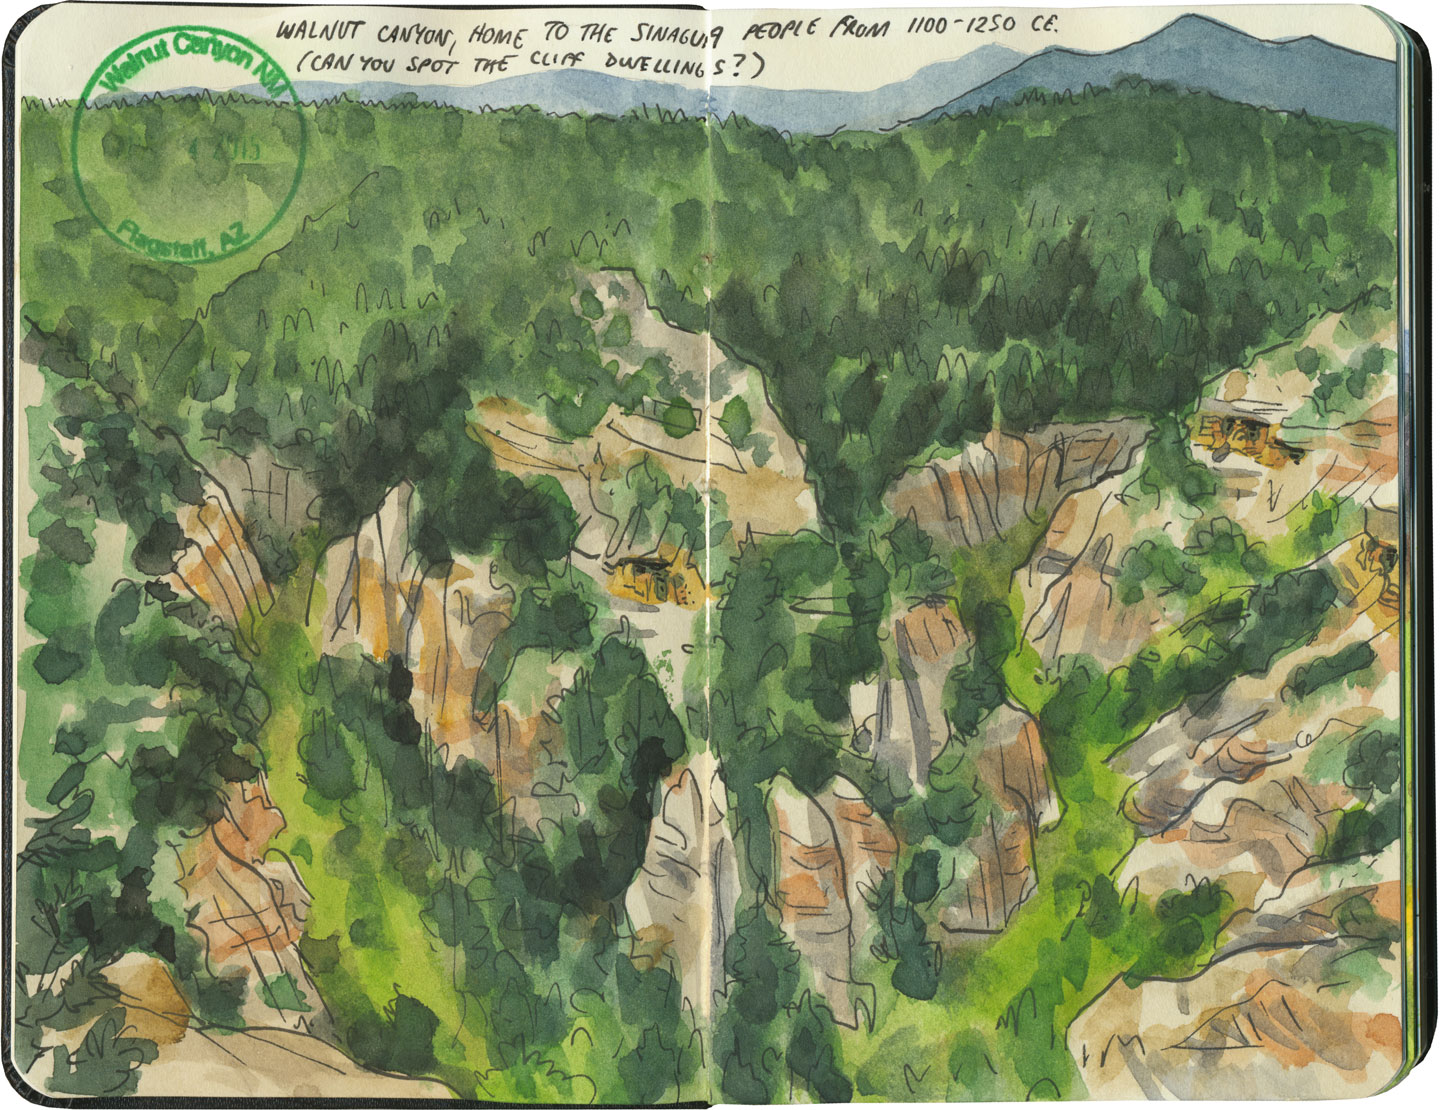 Walnut Canyon National Monument sketch by Chandler O'Leary